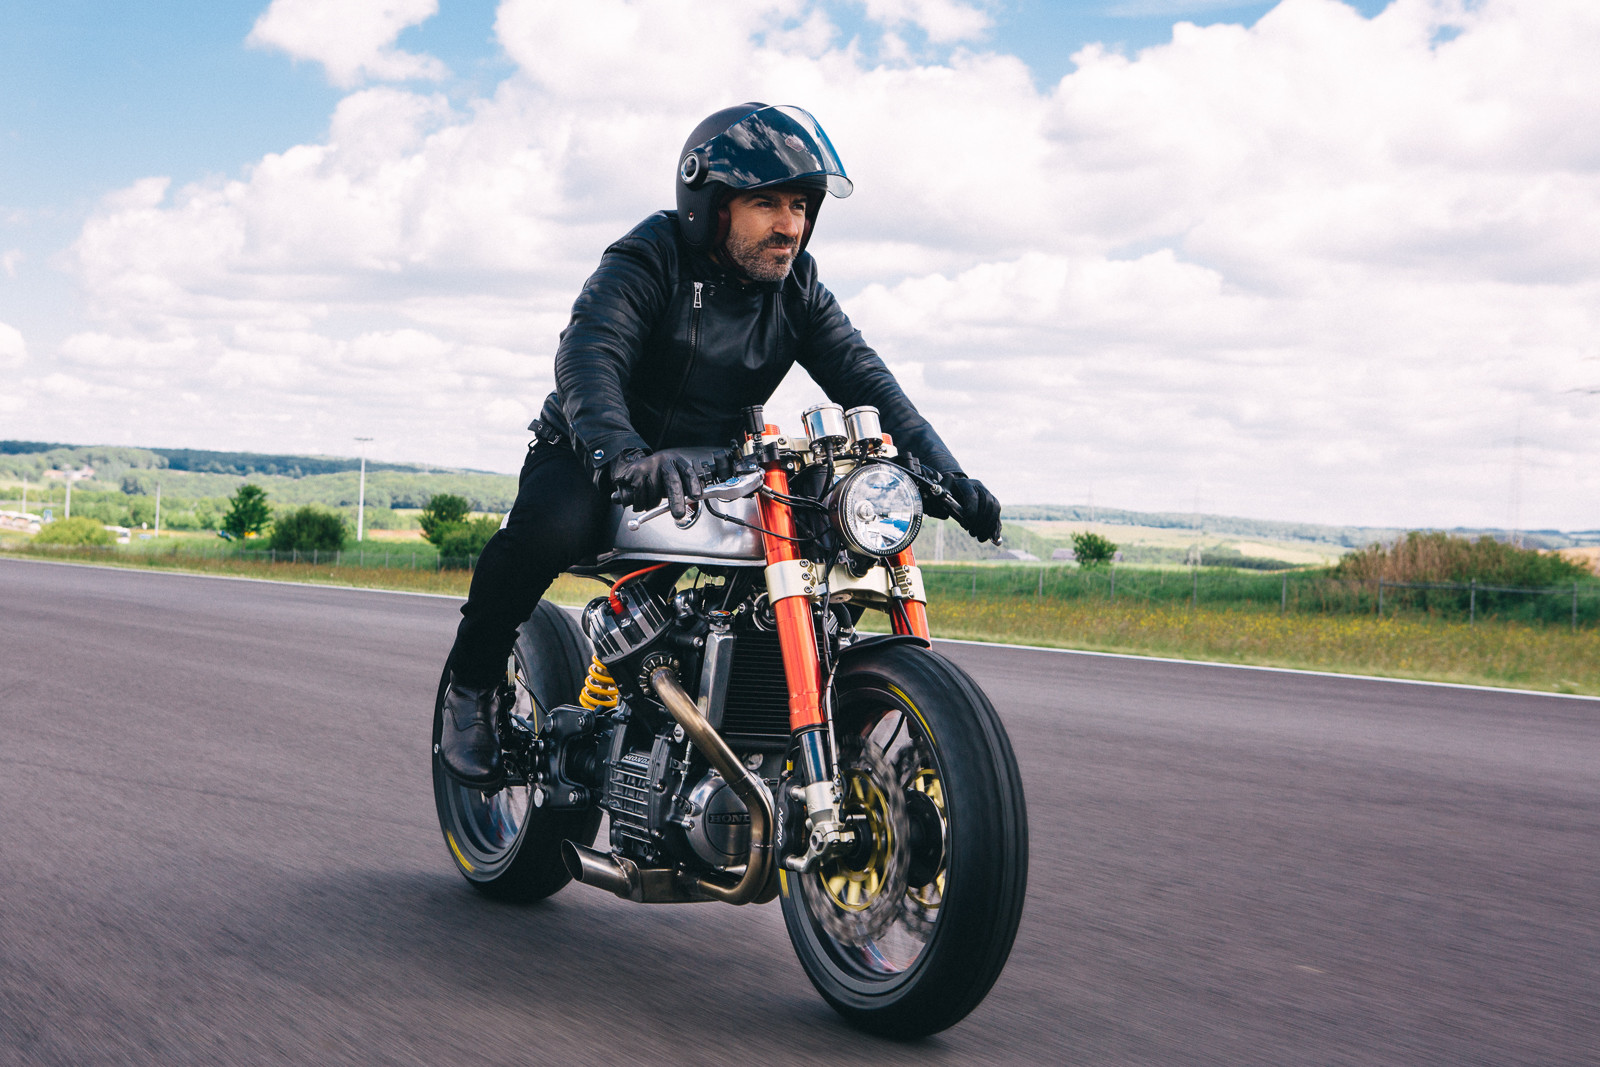 Sacha Lakic on the Cafe Racer BT01